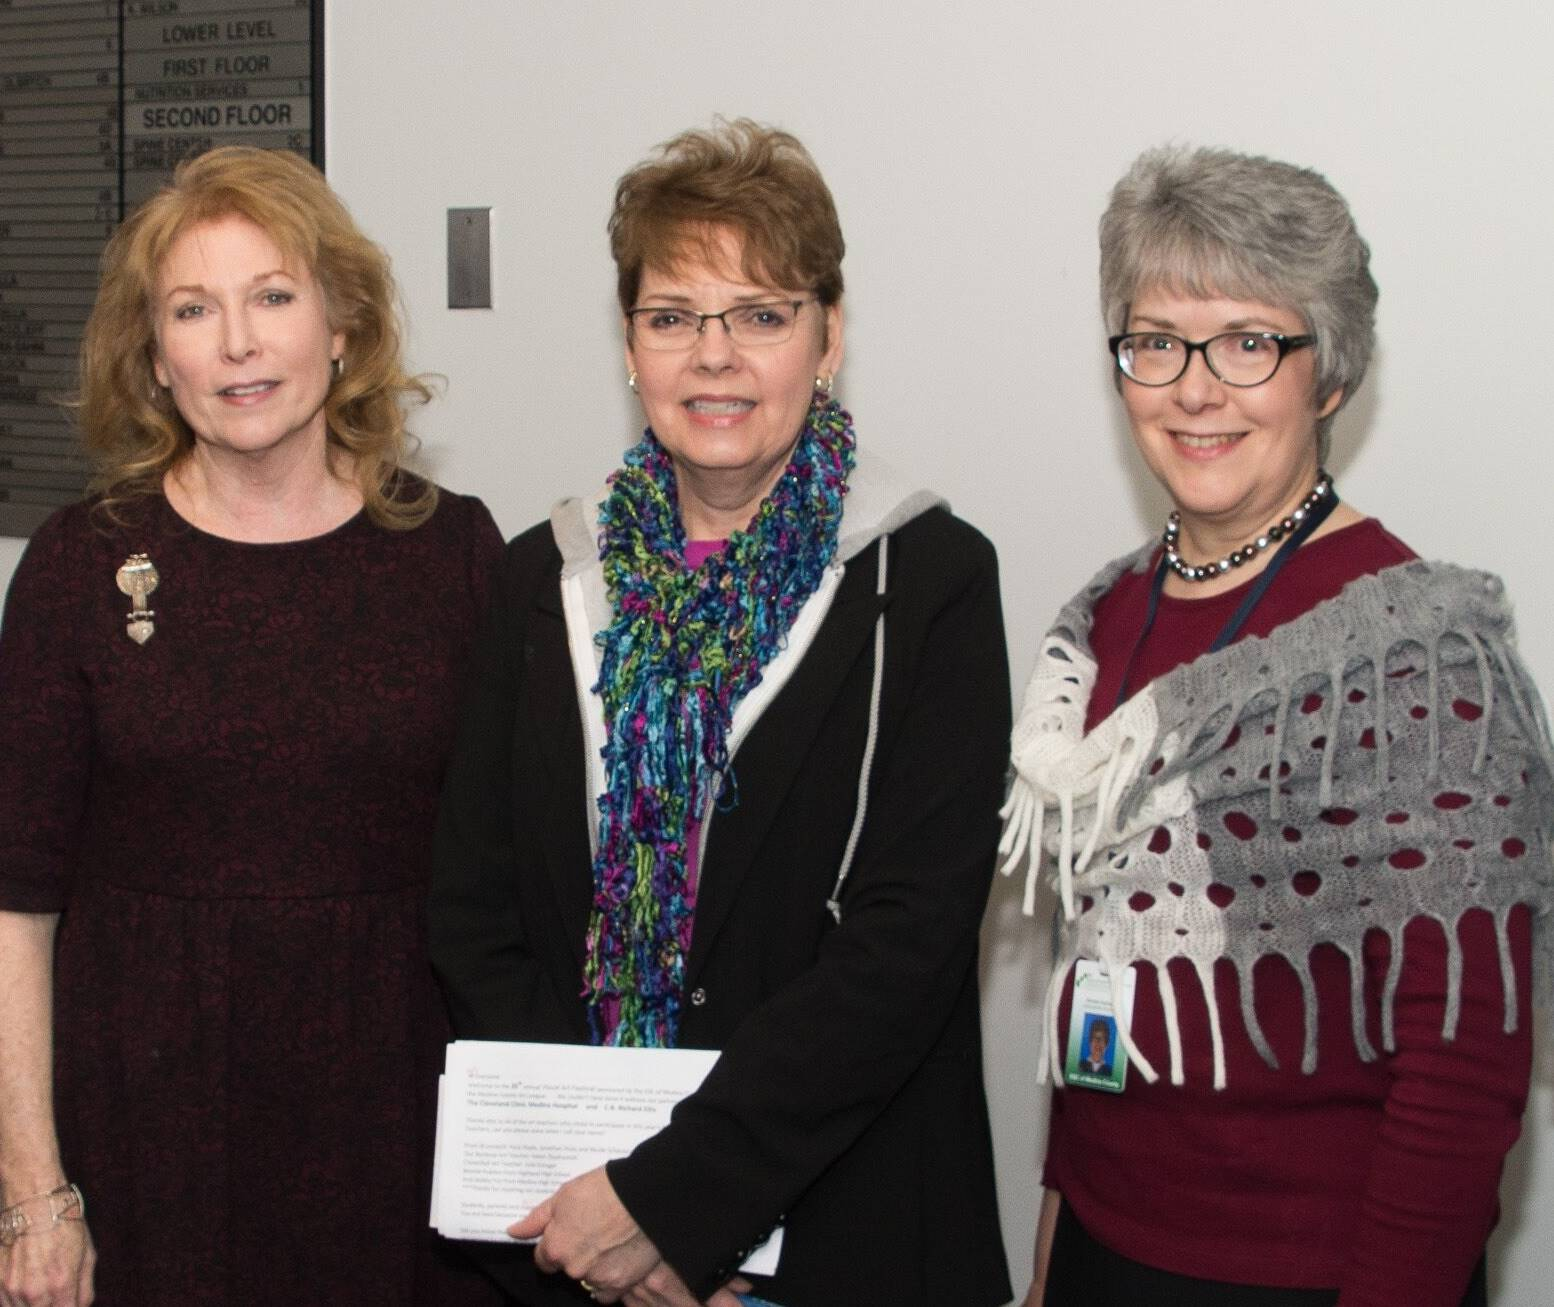 2019 Show Committee (L to R): Janet Baran, MCAL; Pat Wise, ESC; and Brenda Zacharias, ESC